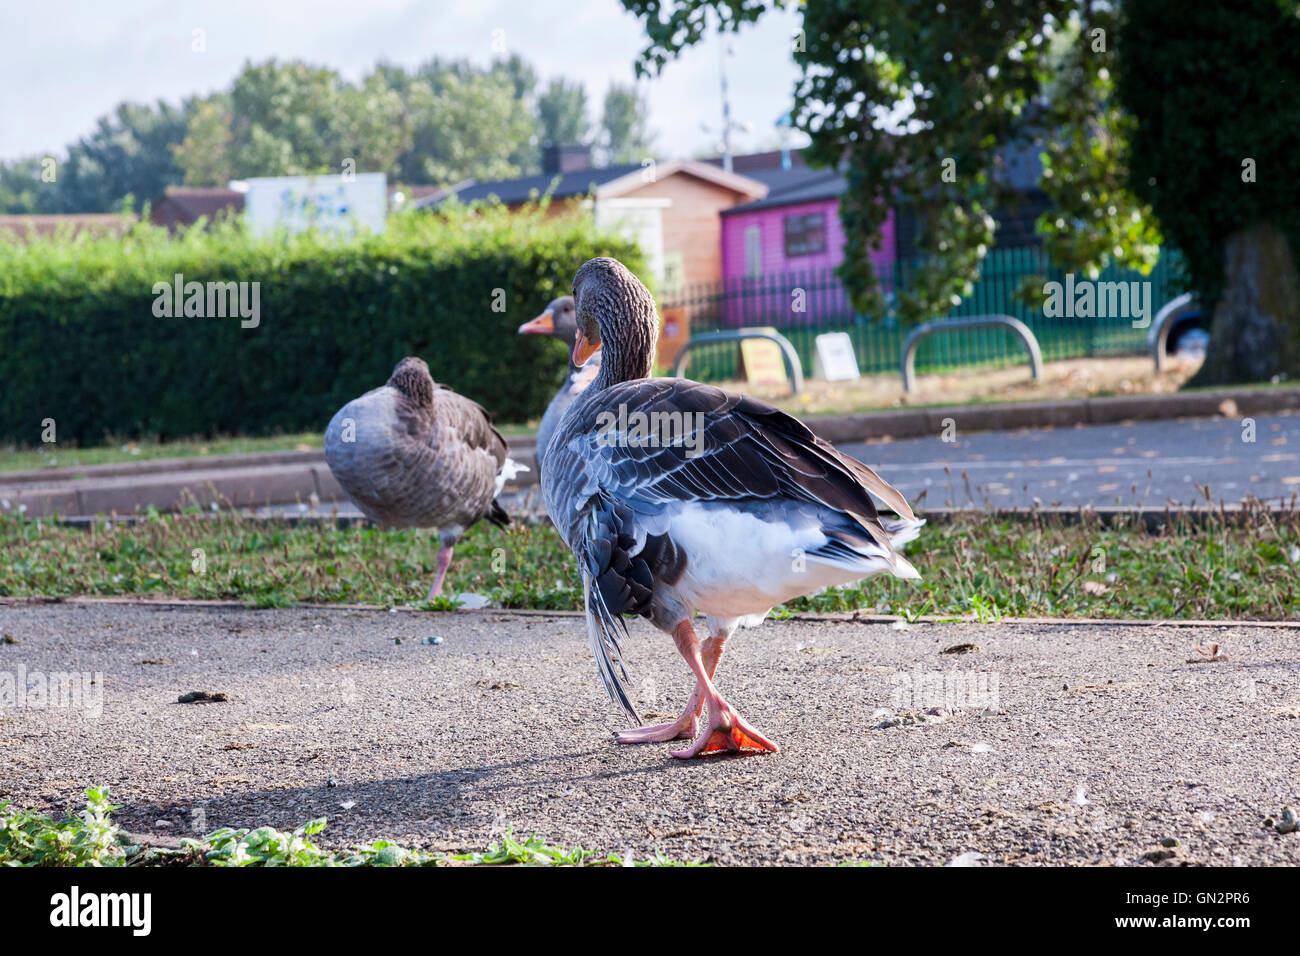 Northampton, Billing Aquadrome, 28th August 2016. A group of Greylag and Canada Geese with Angle Wings is observed - Stock Image